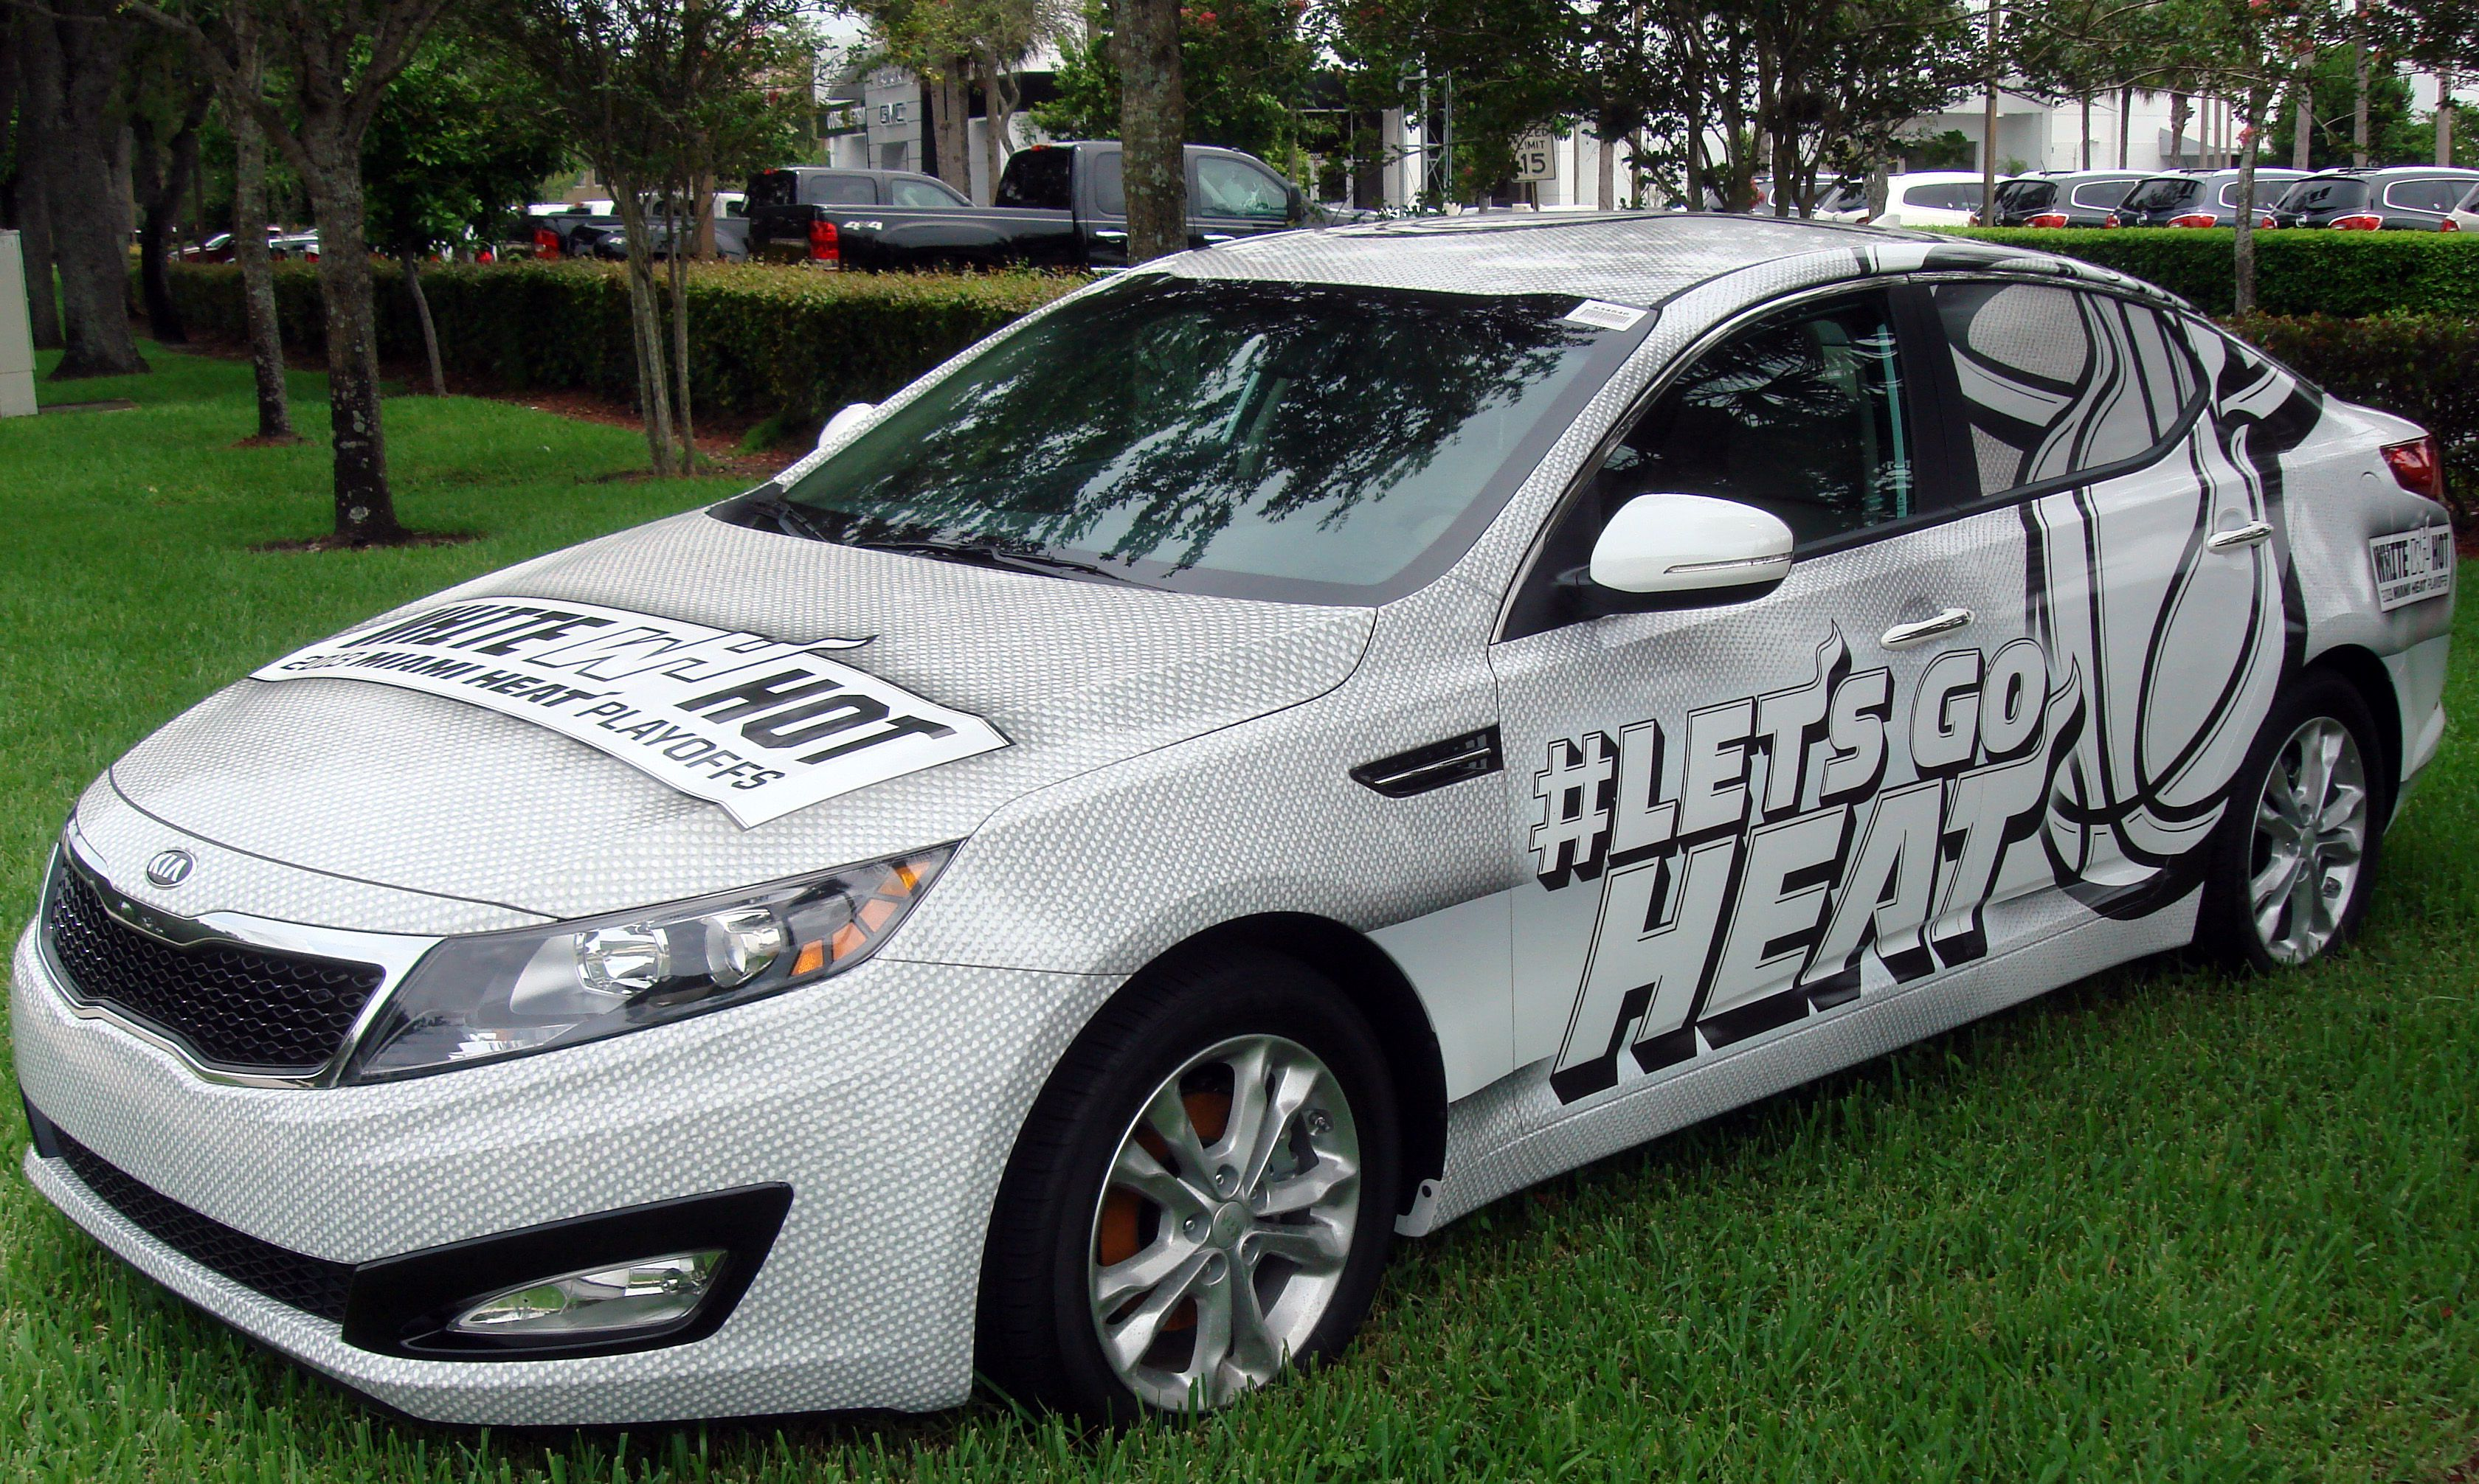 From Http Www Carbuyingtips Com Here Is The Miami Heat Car A New